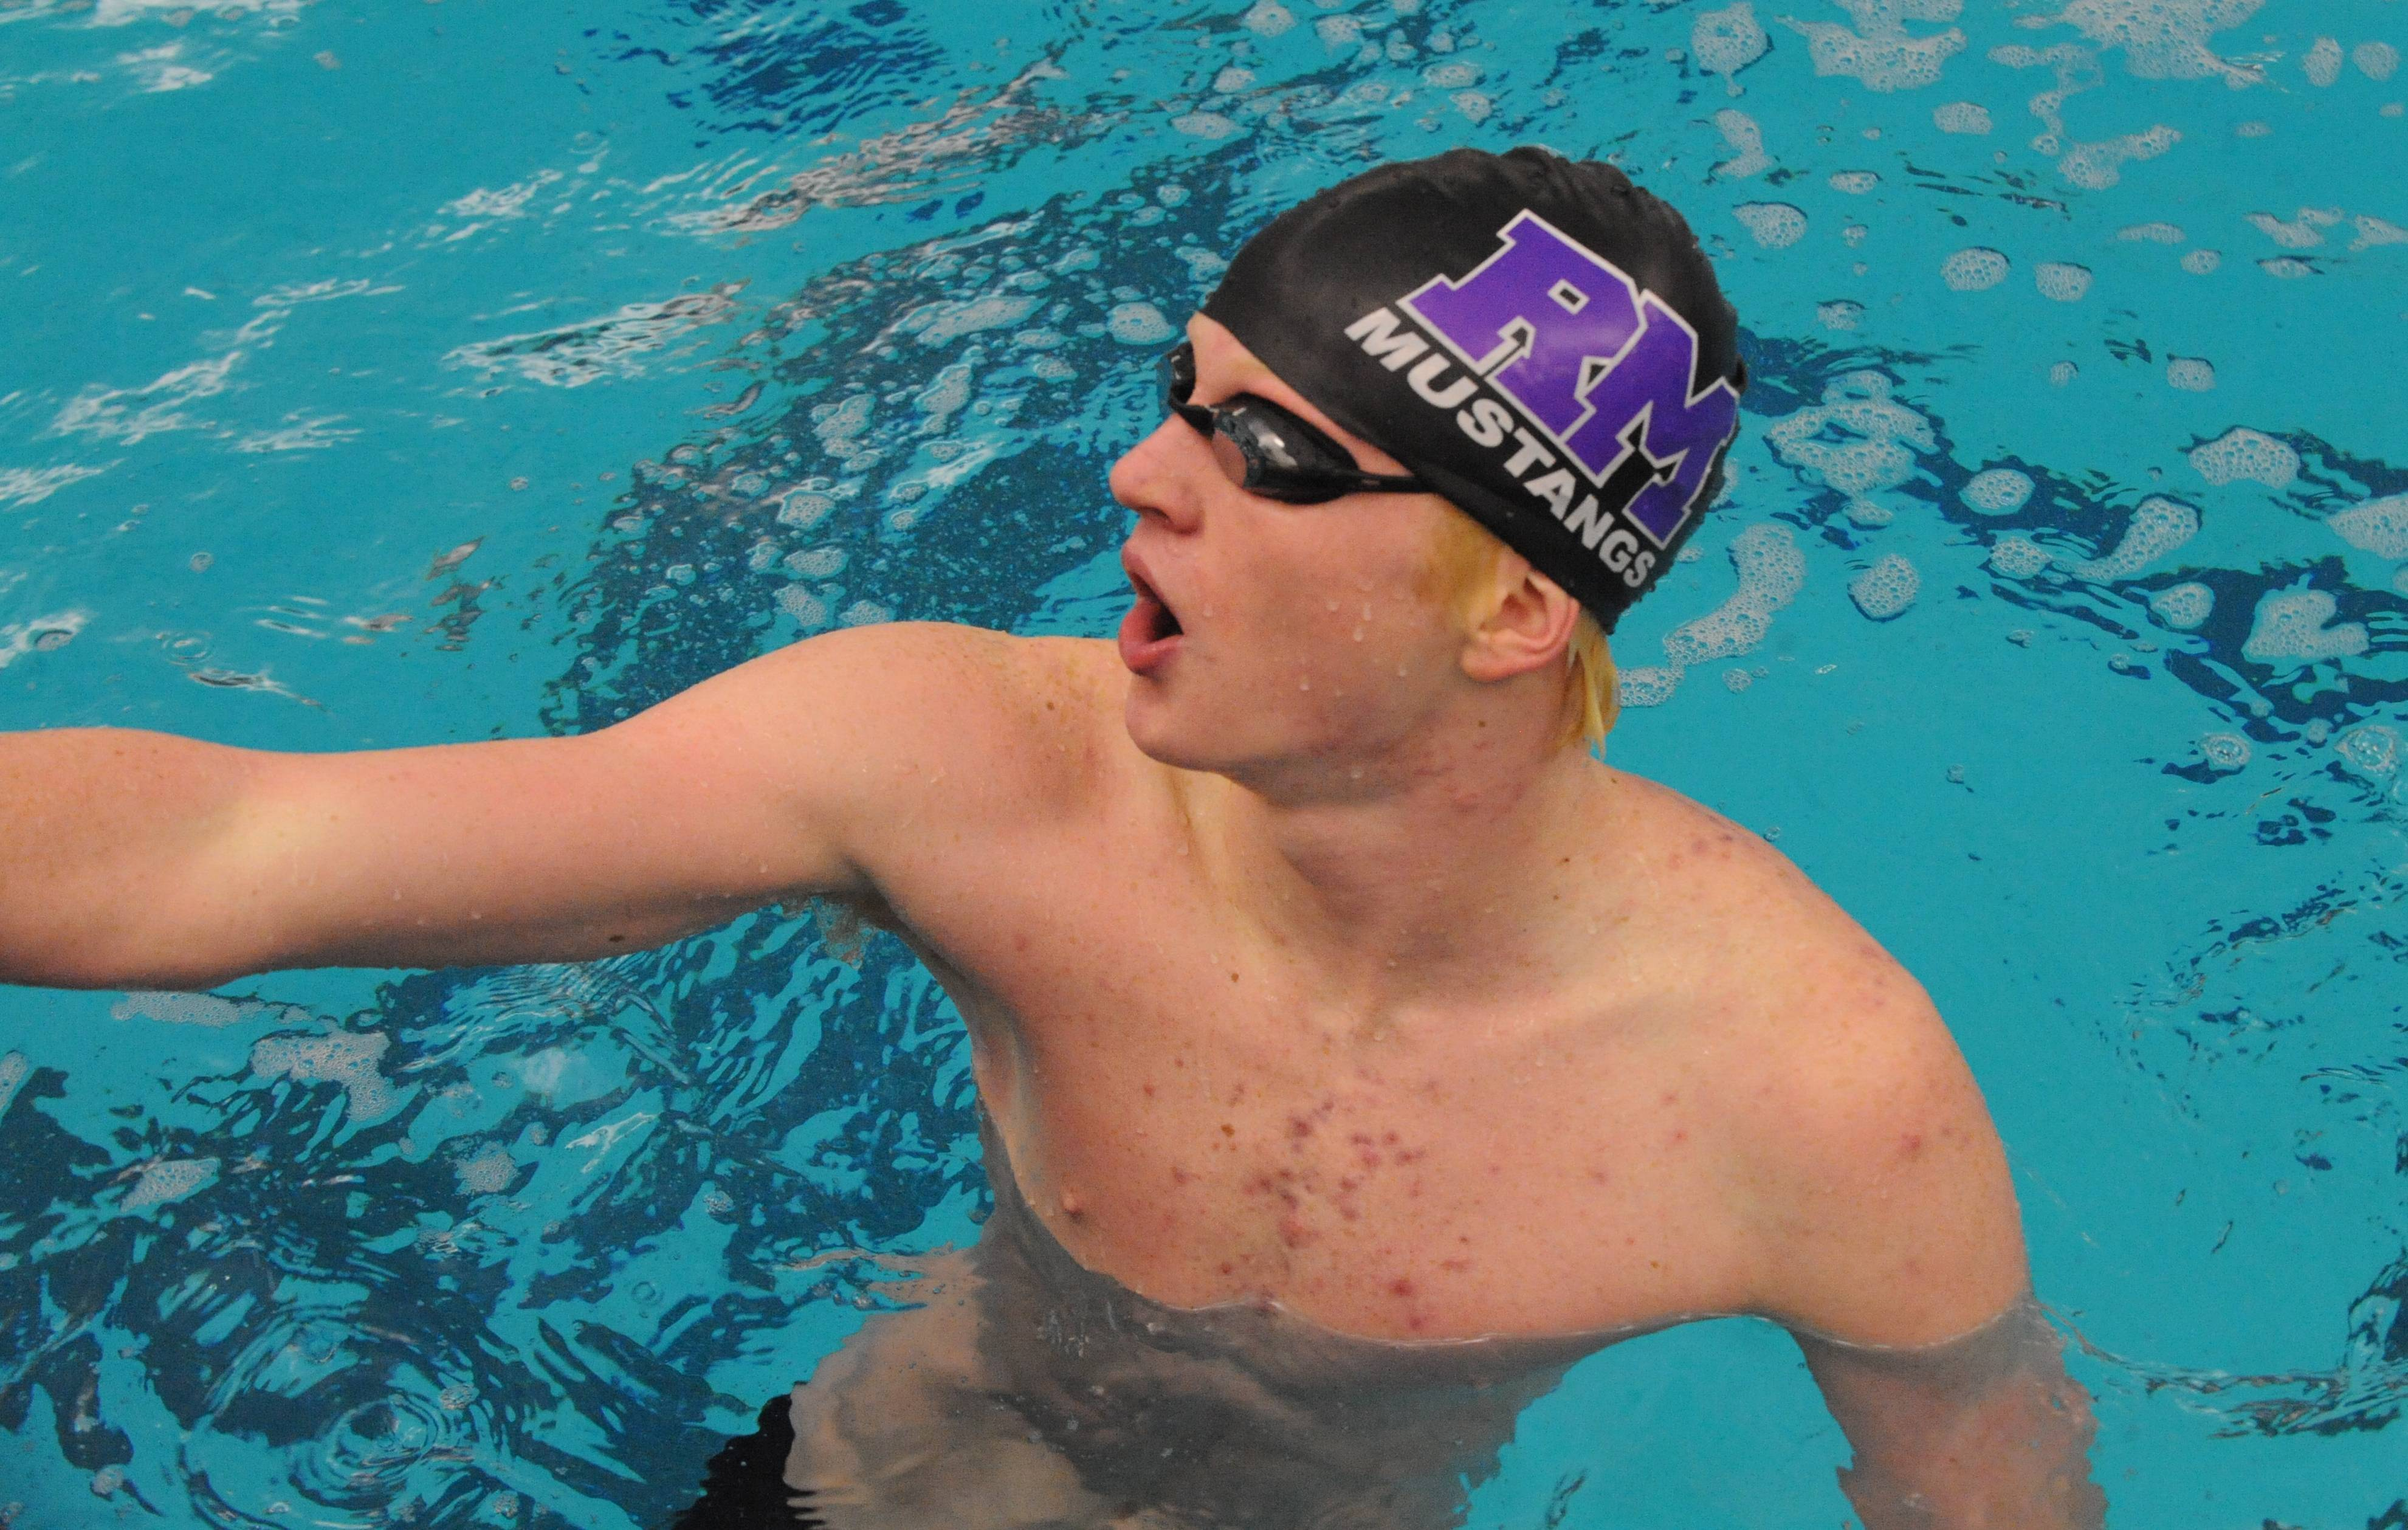 Rolling Meadows junior Jake Barson likes what he sees on the clock at Barrington after winning the 100-yard breaststroke in a team-record 59.35.